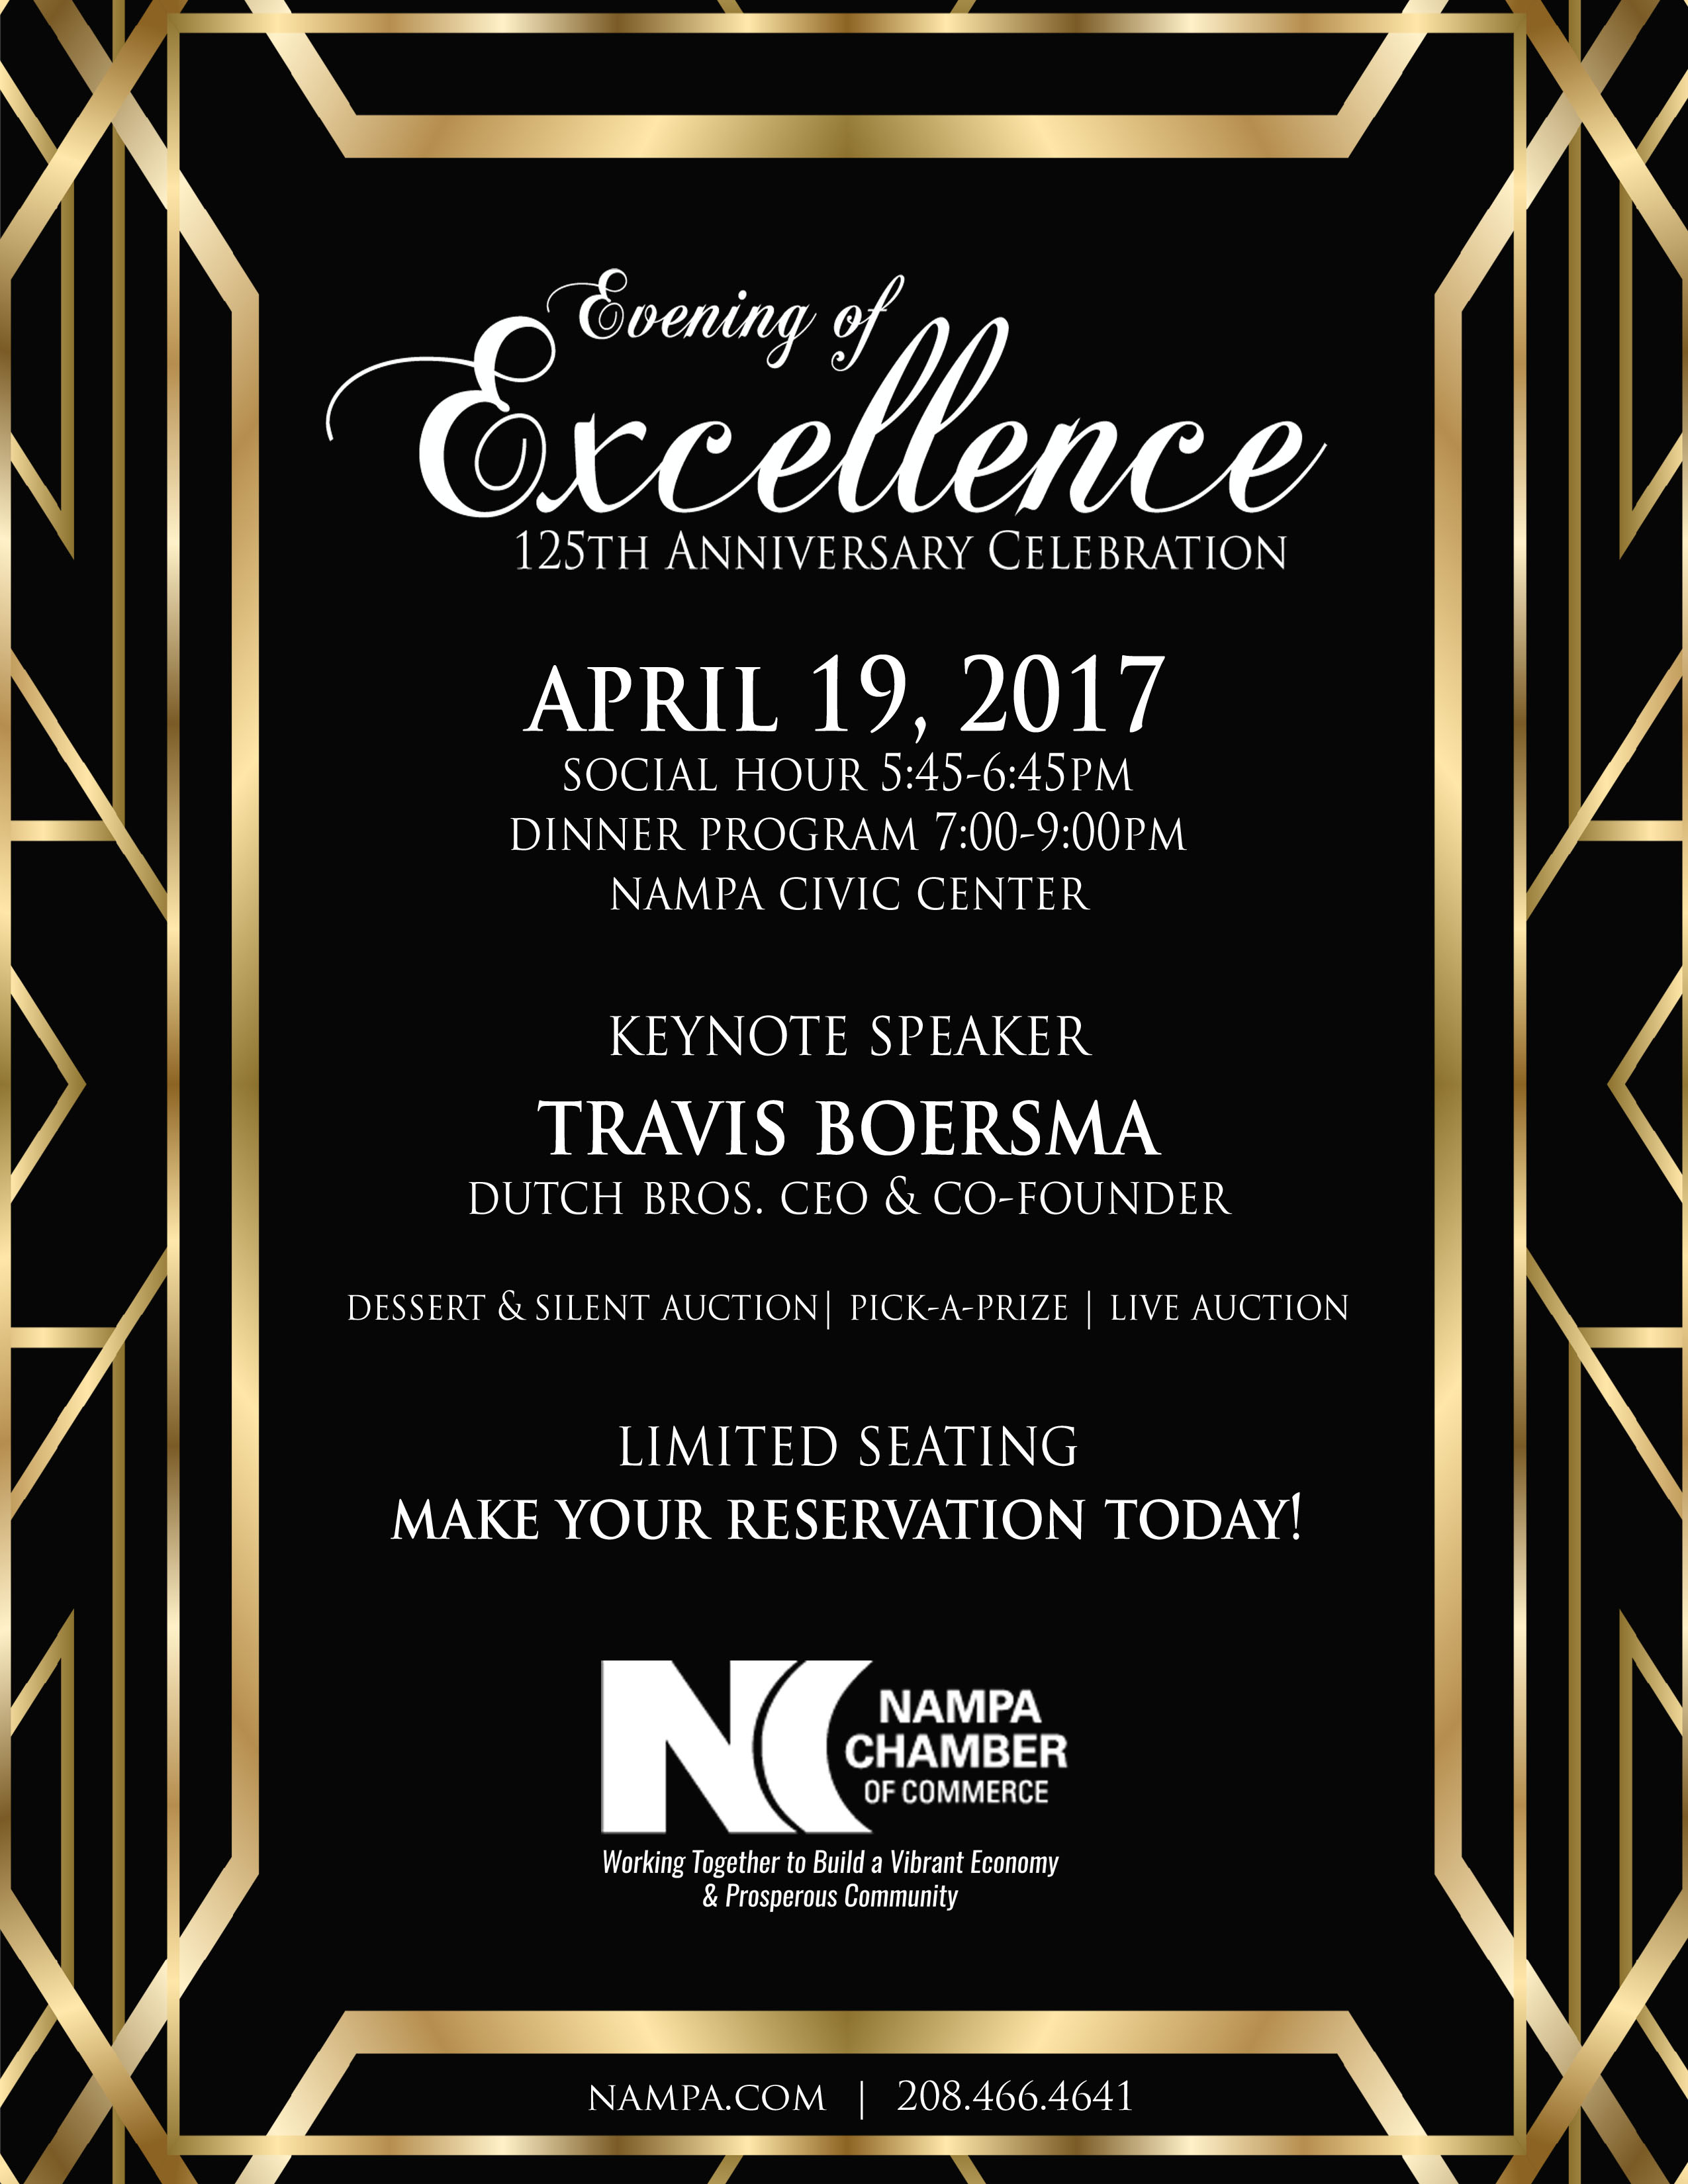 2017 Evening of Excellence